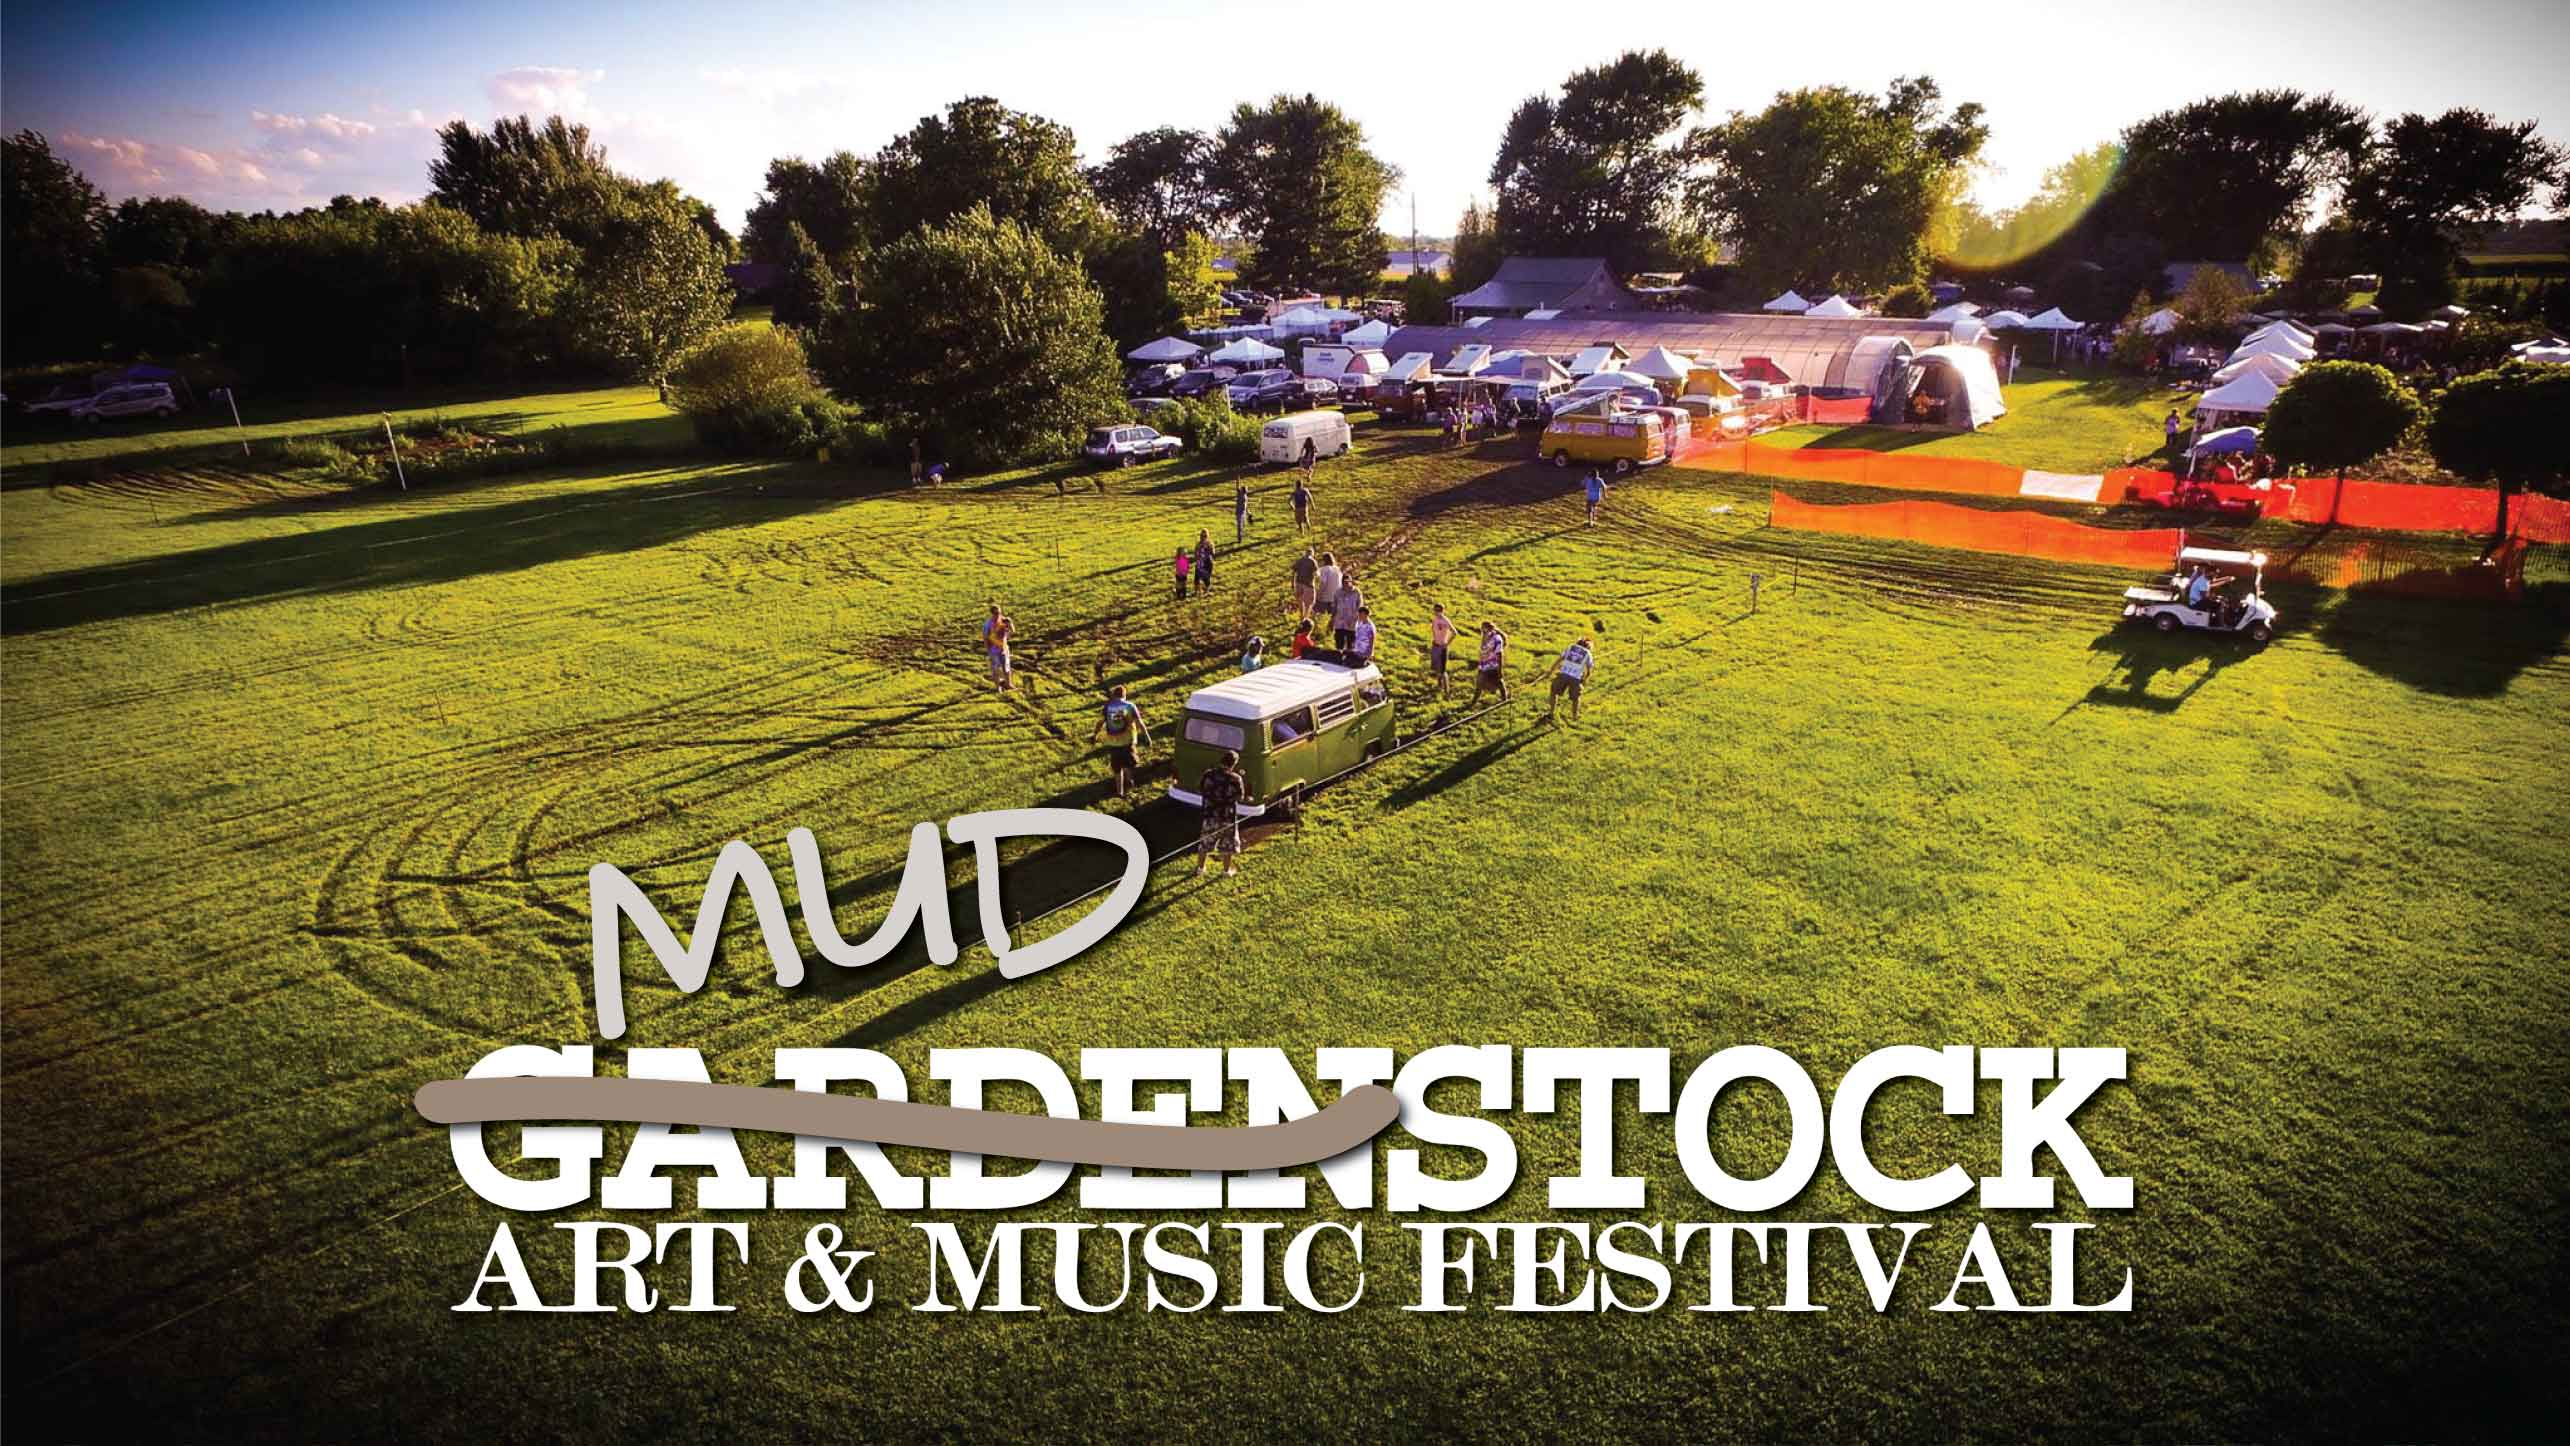 #Gardenstock16 : The Year known as